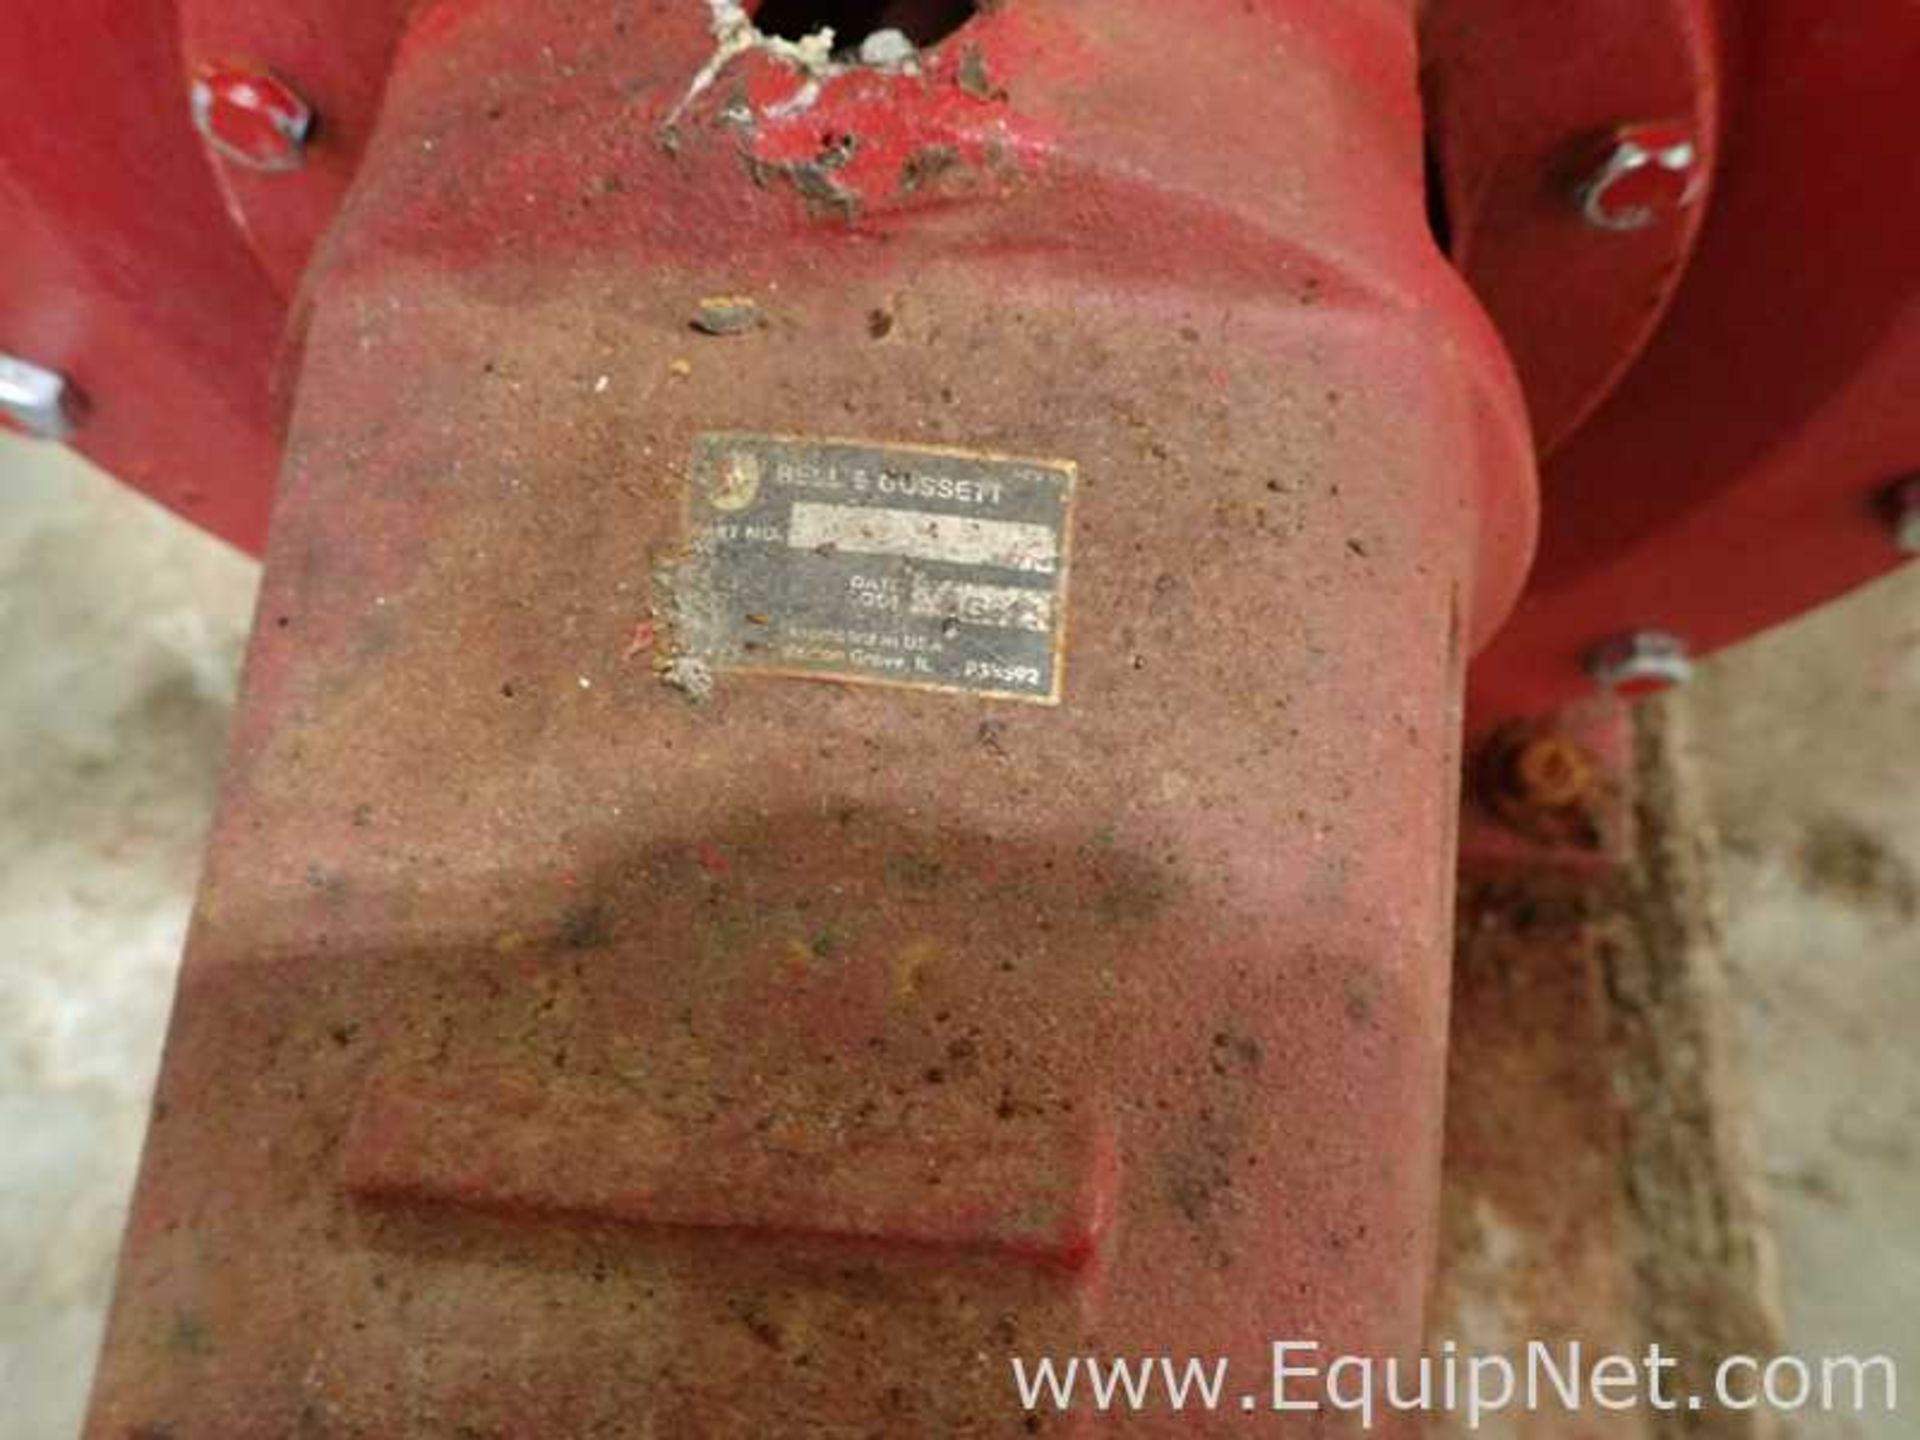 Lot of 2 Bell and Gossett e-1510 25 HP Centrifugal Pumps - Image 5 of 11